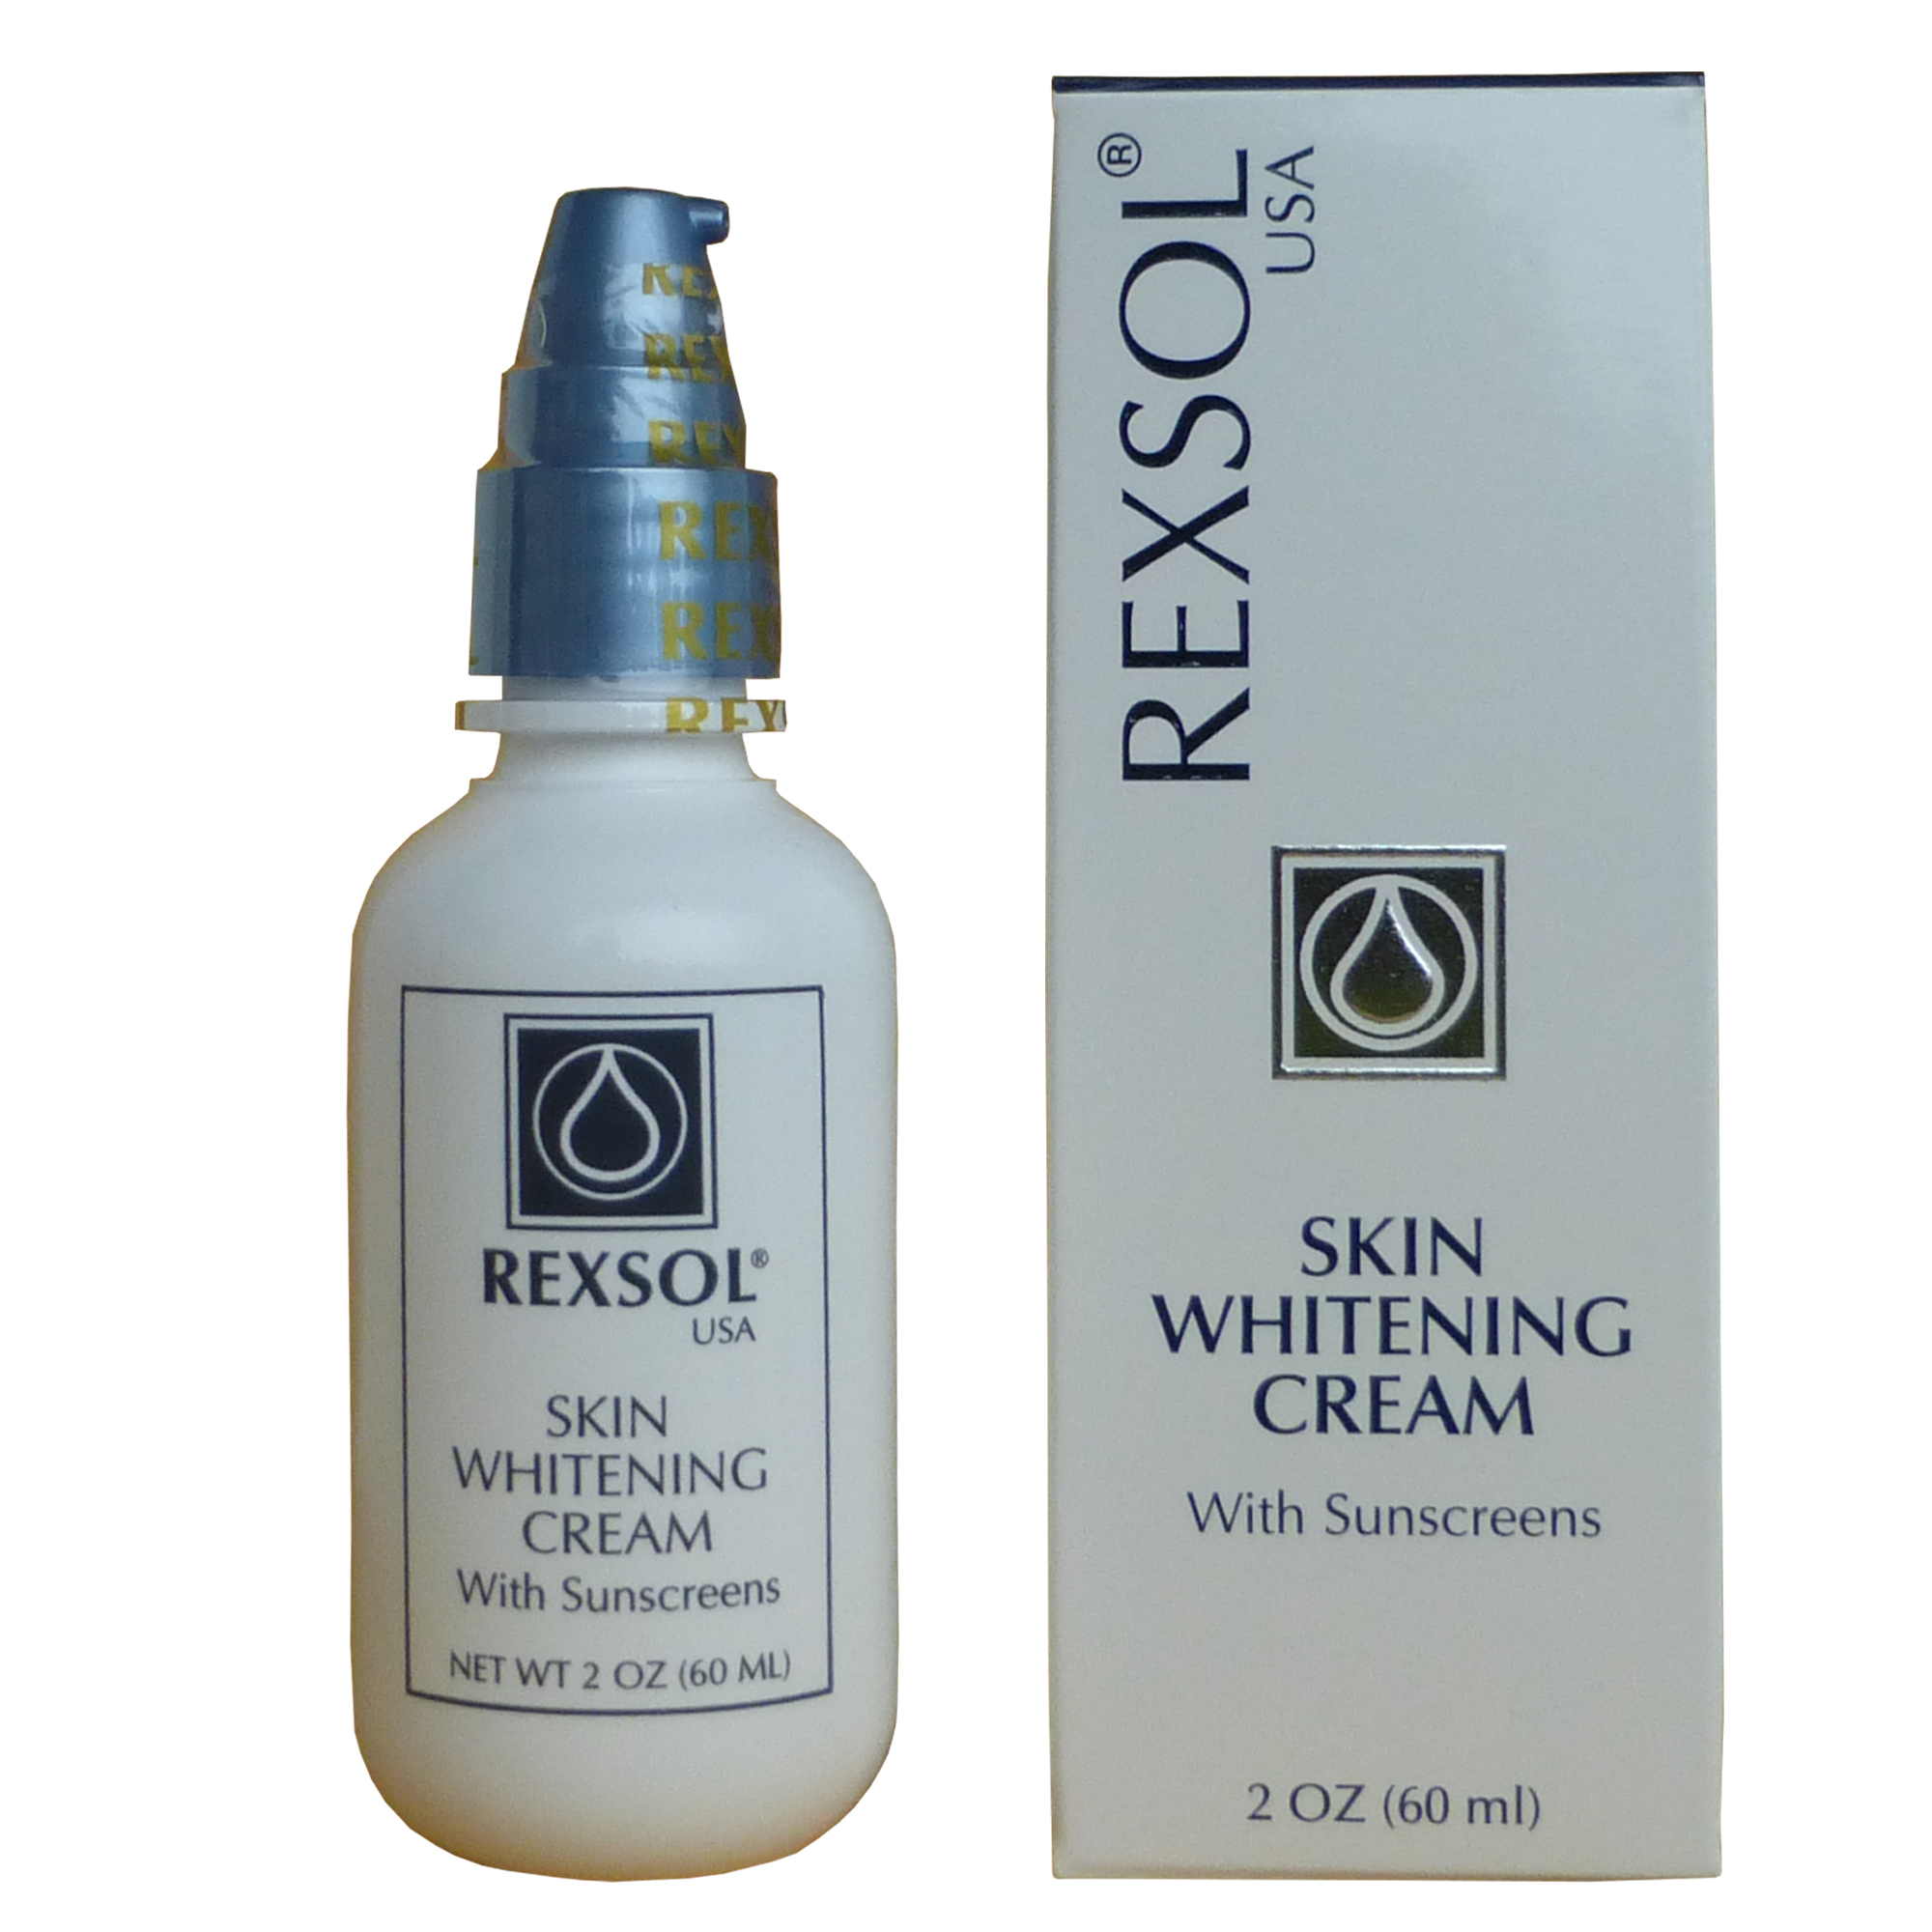 skin whitening cream with sun screen - with--